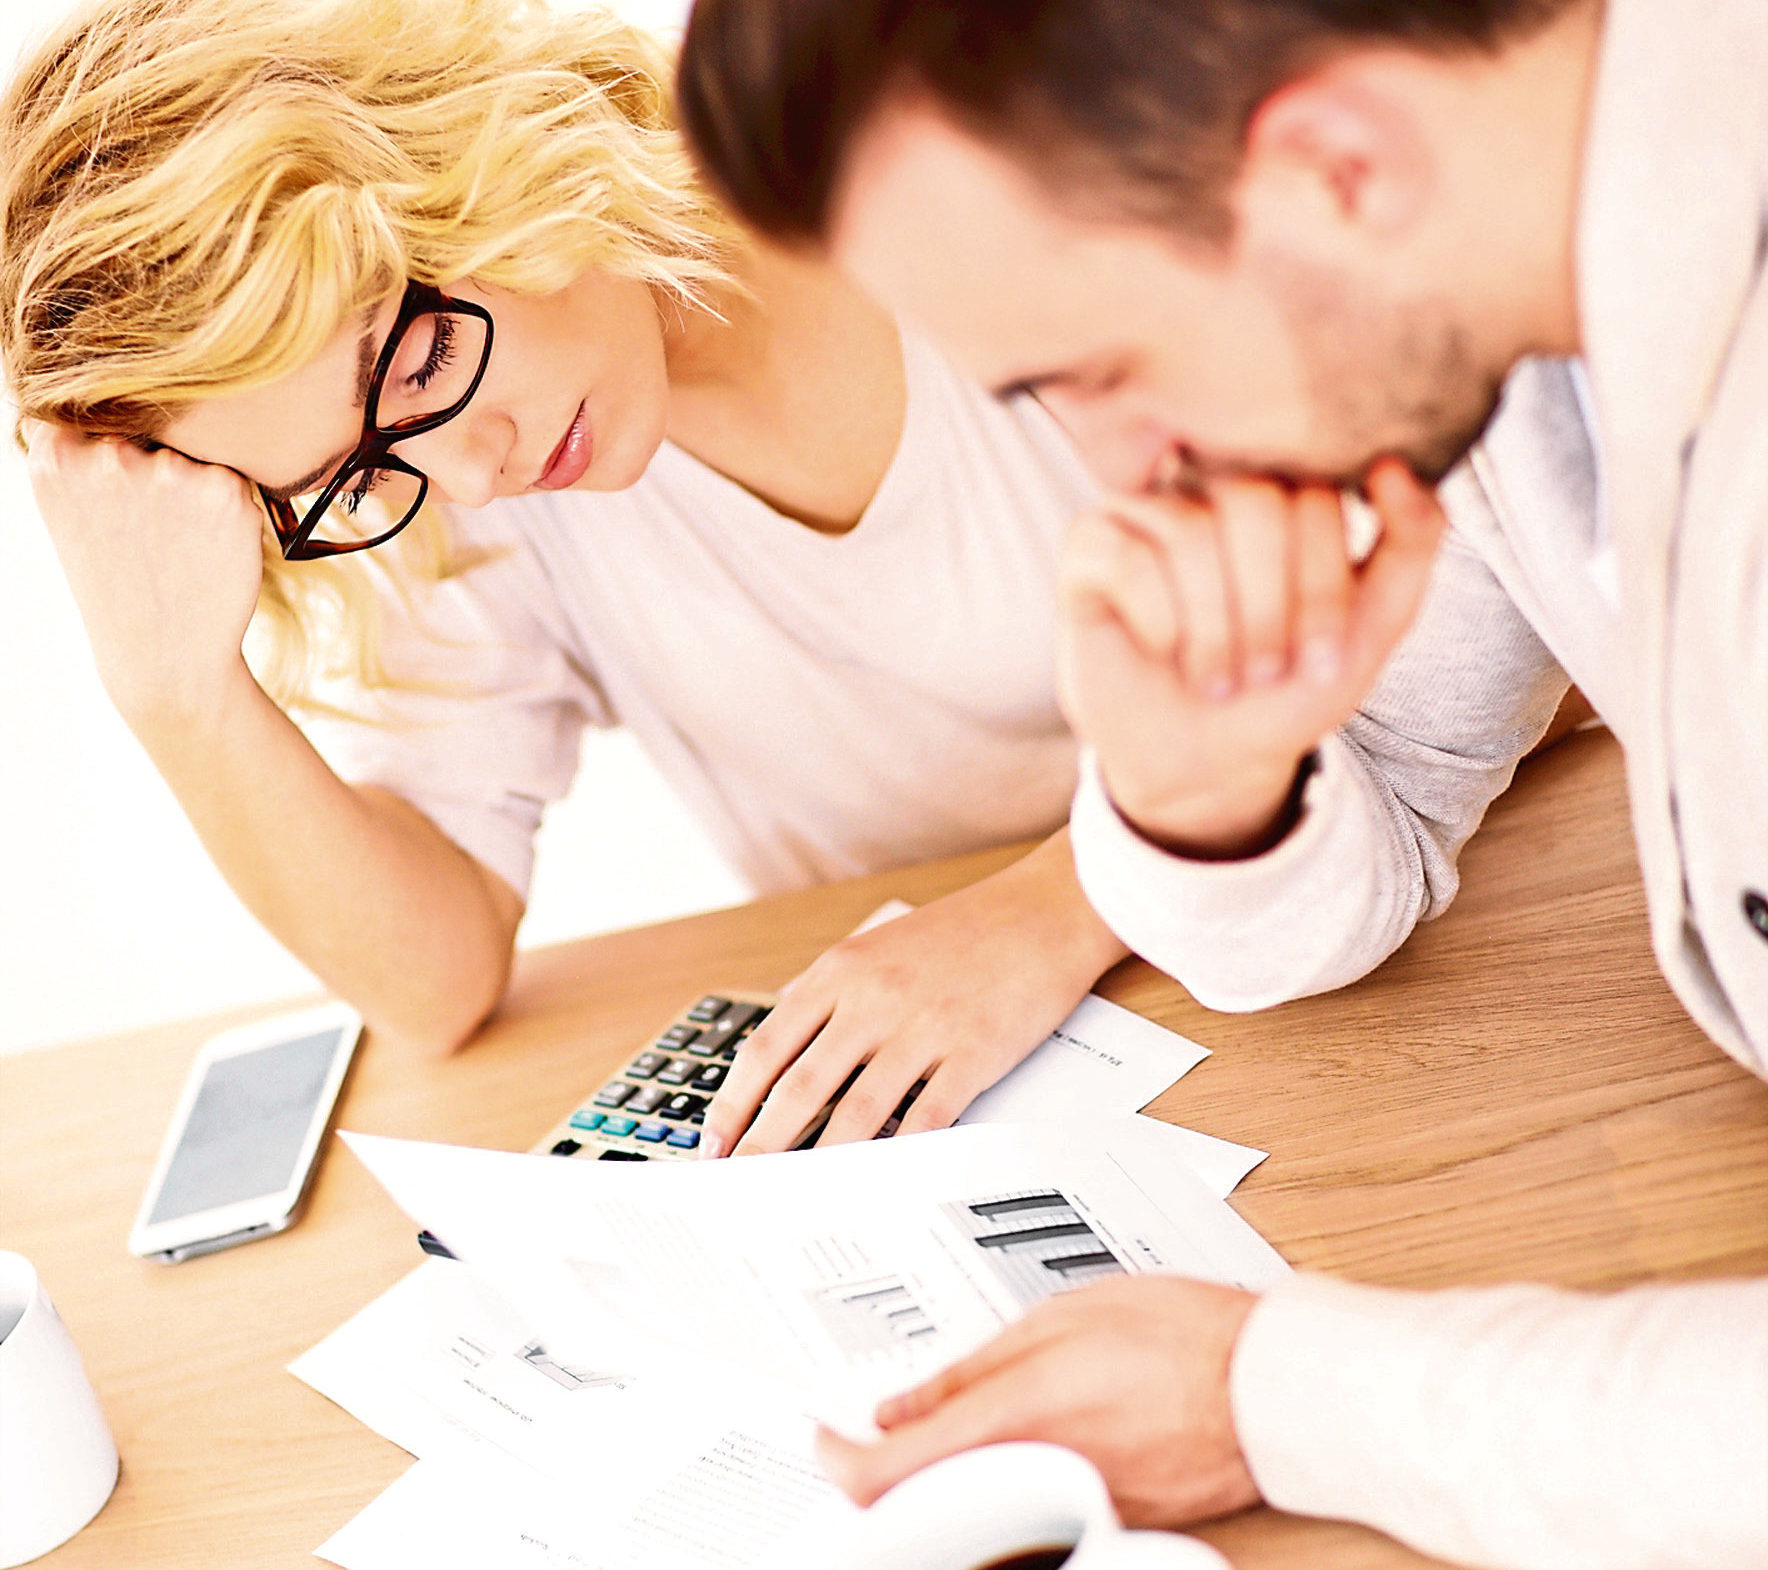 The Financial Conduct Authority (FCA) said these people could be saving £550 a year.